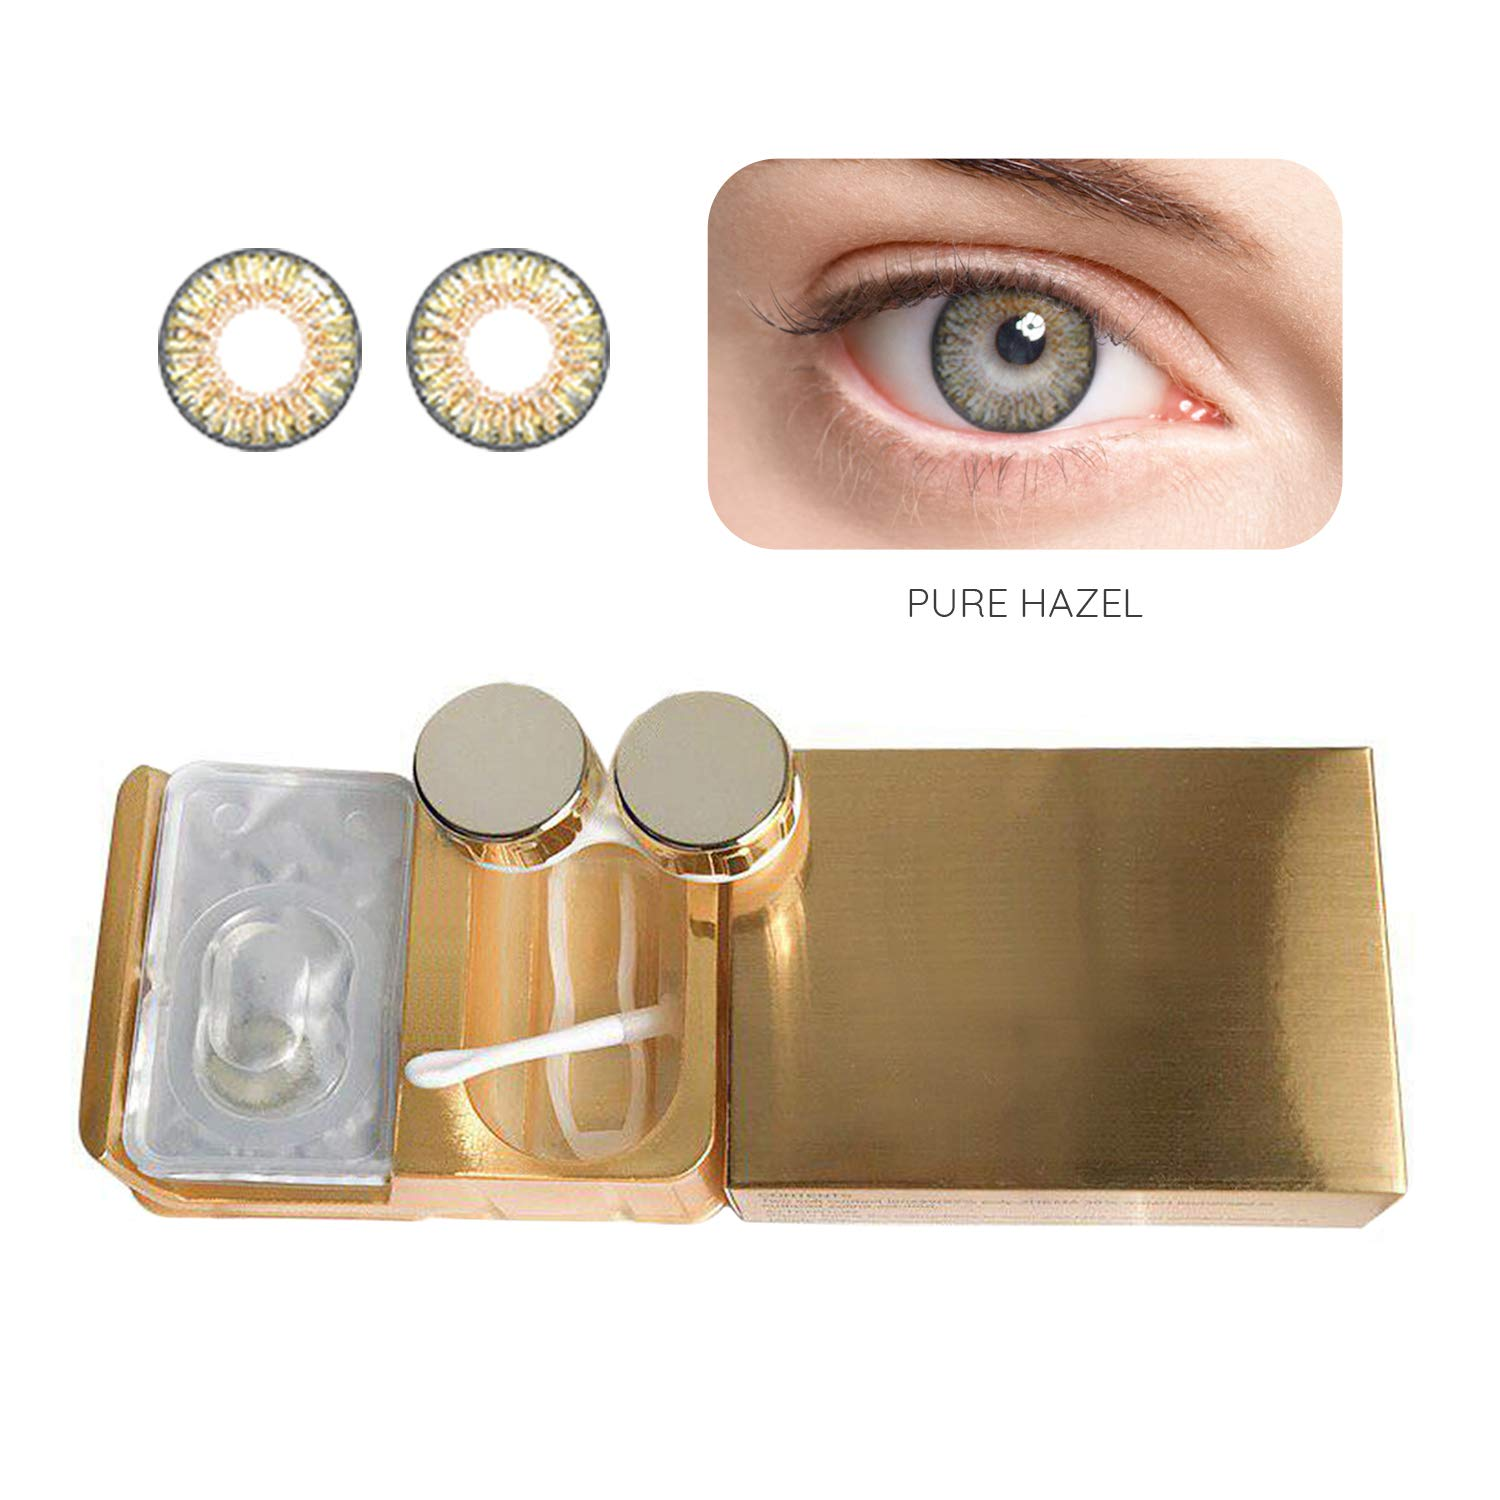 Eye Color Enhancer Set - Bright Iris Tone Transformation Optics Changer - Fun Party and Costume-look - Unisex(Pure Hazel)